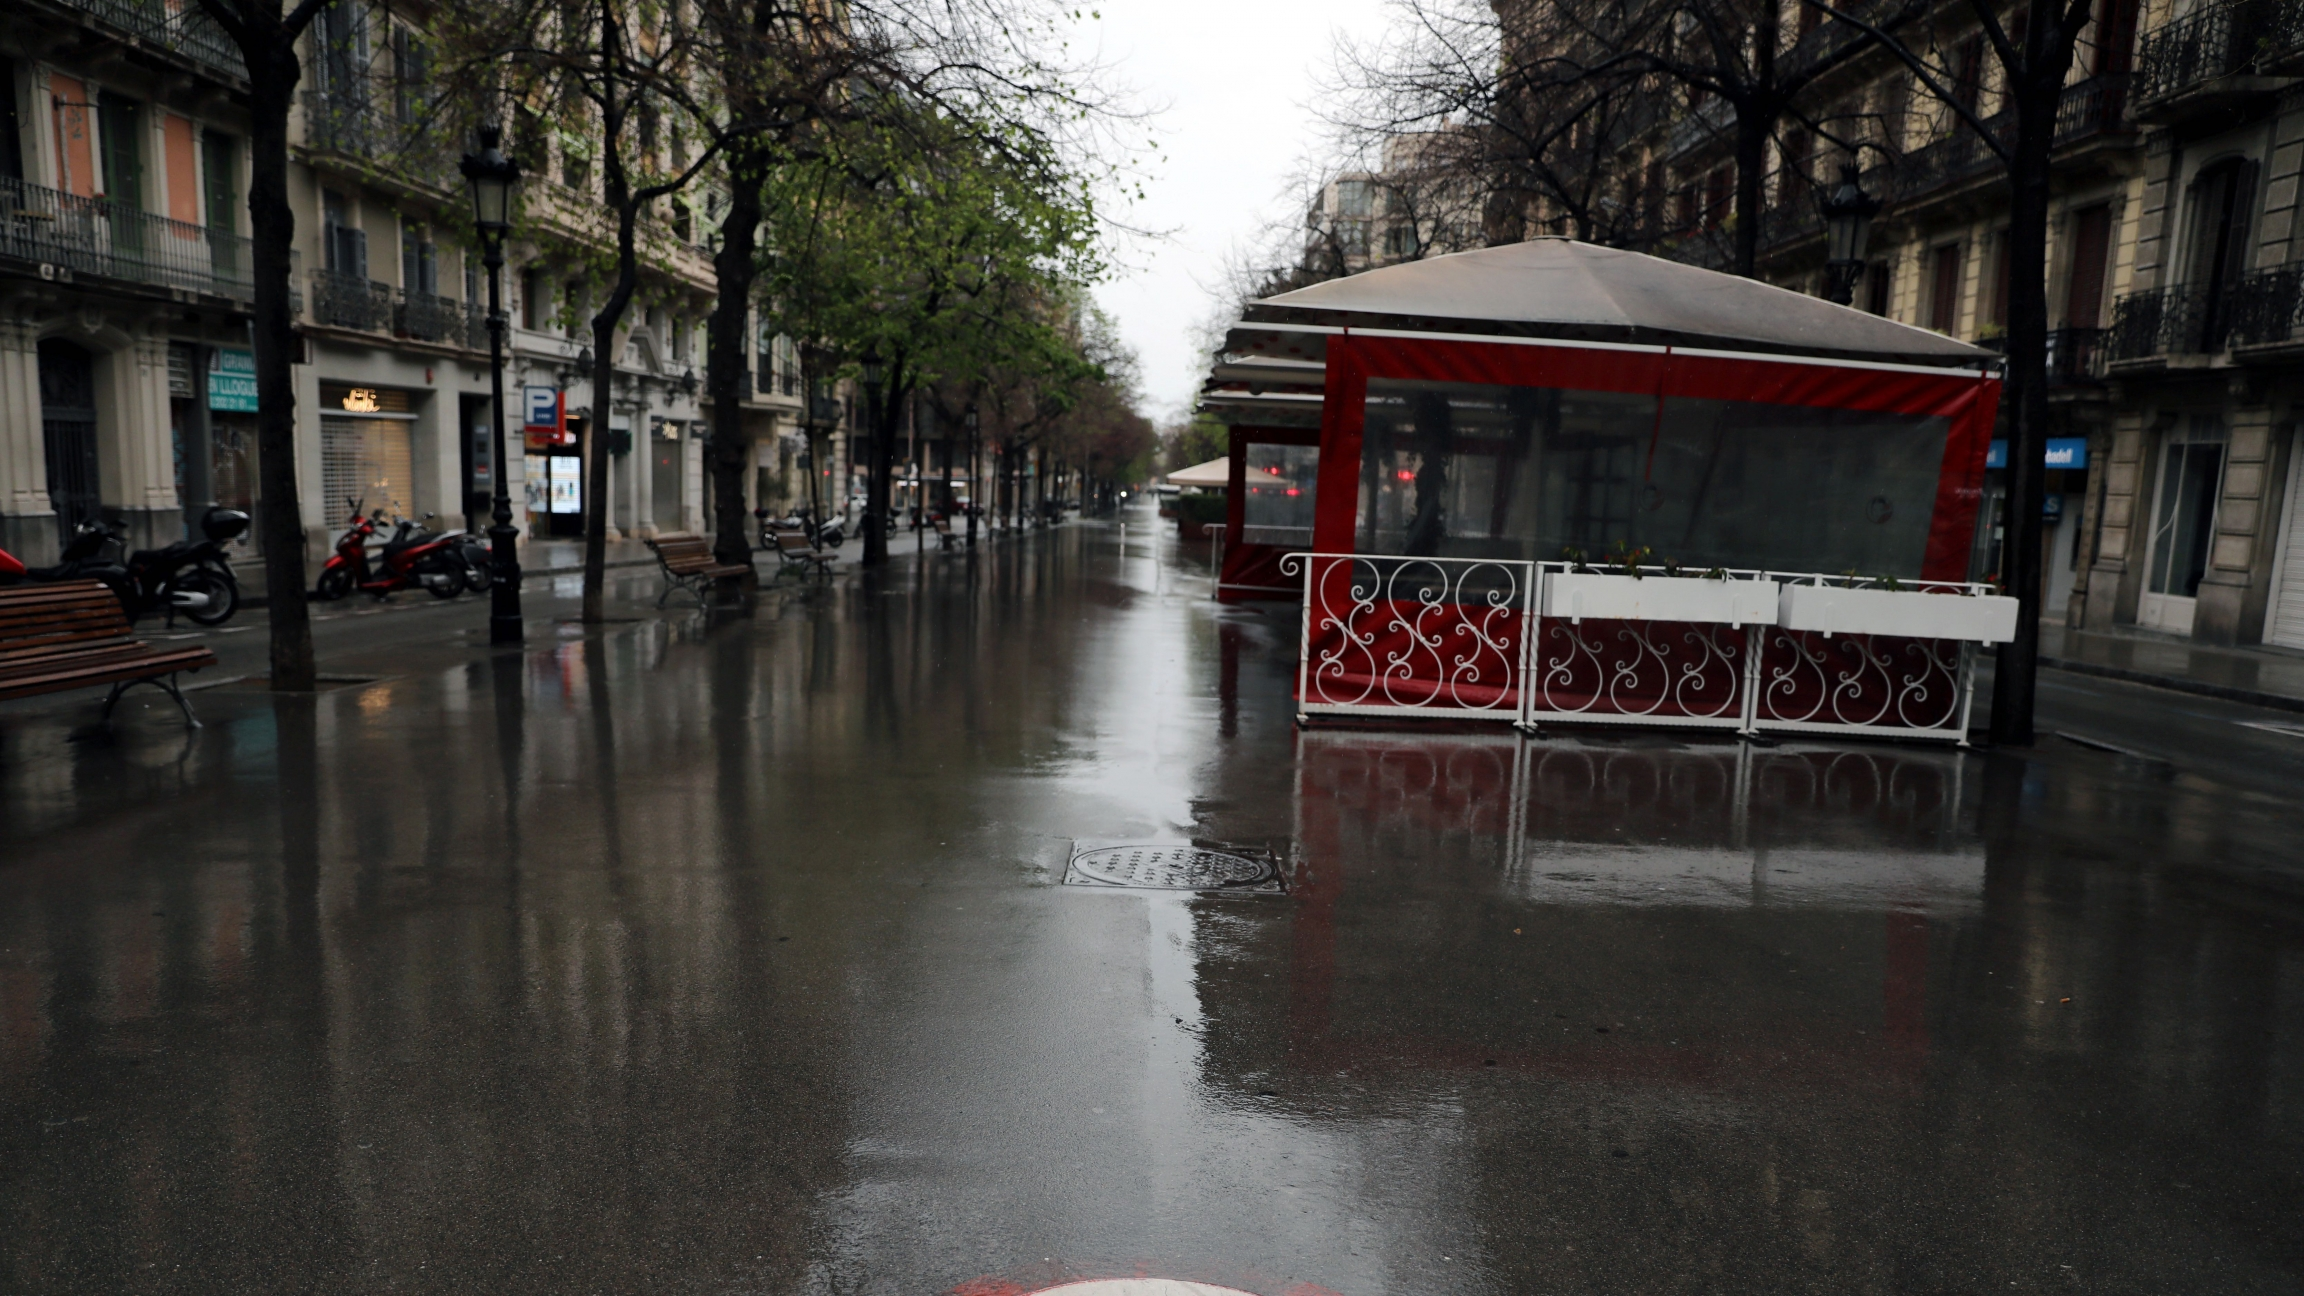 A deserted Rambla de Catalunya street is pictured during the outbreak of the coronavirus disease (COVID-19), in Barcelona, Spain, March 31, 2020.